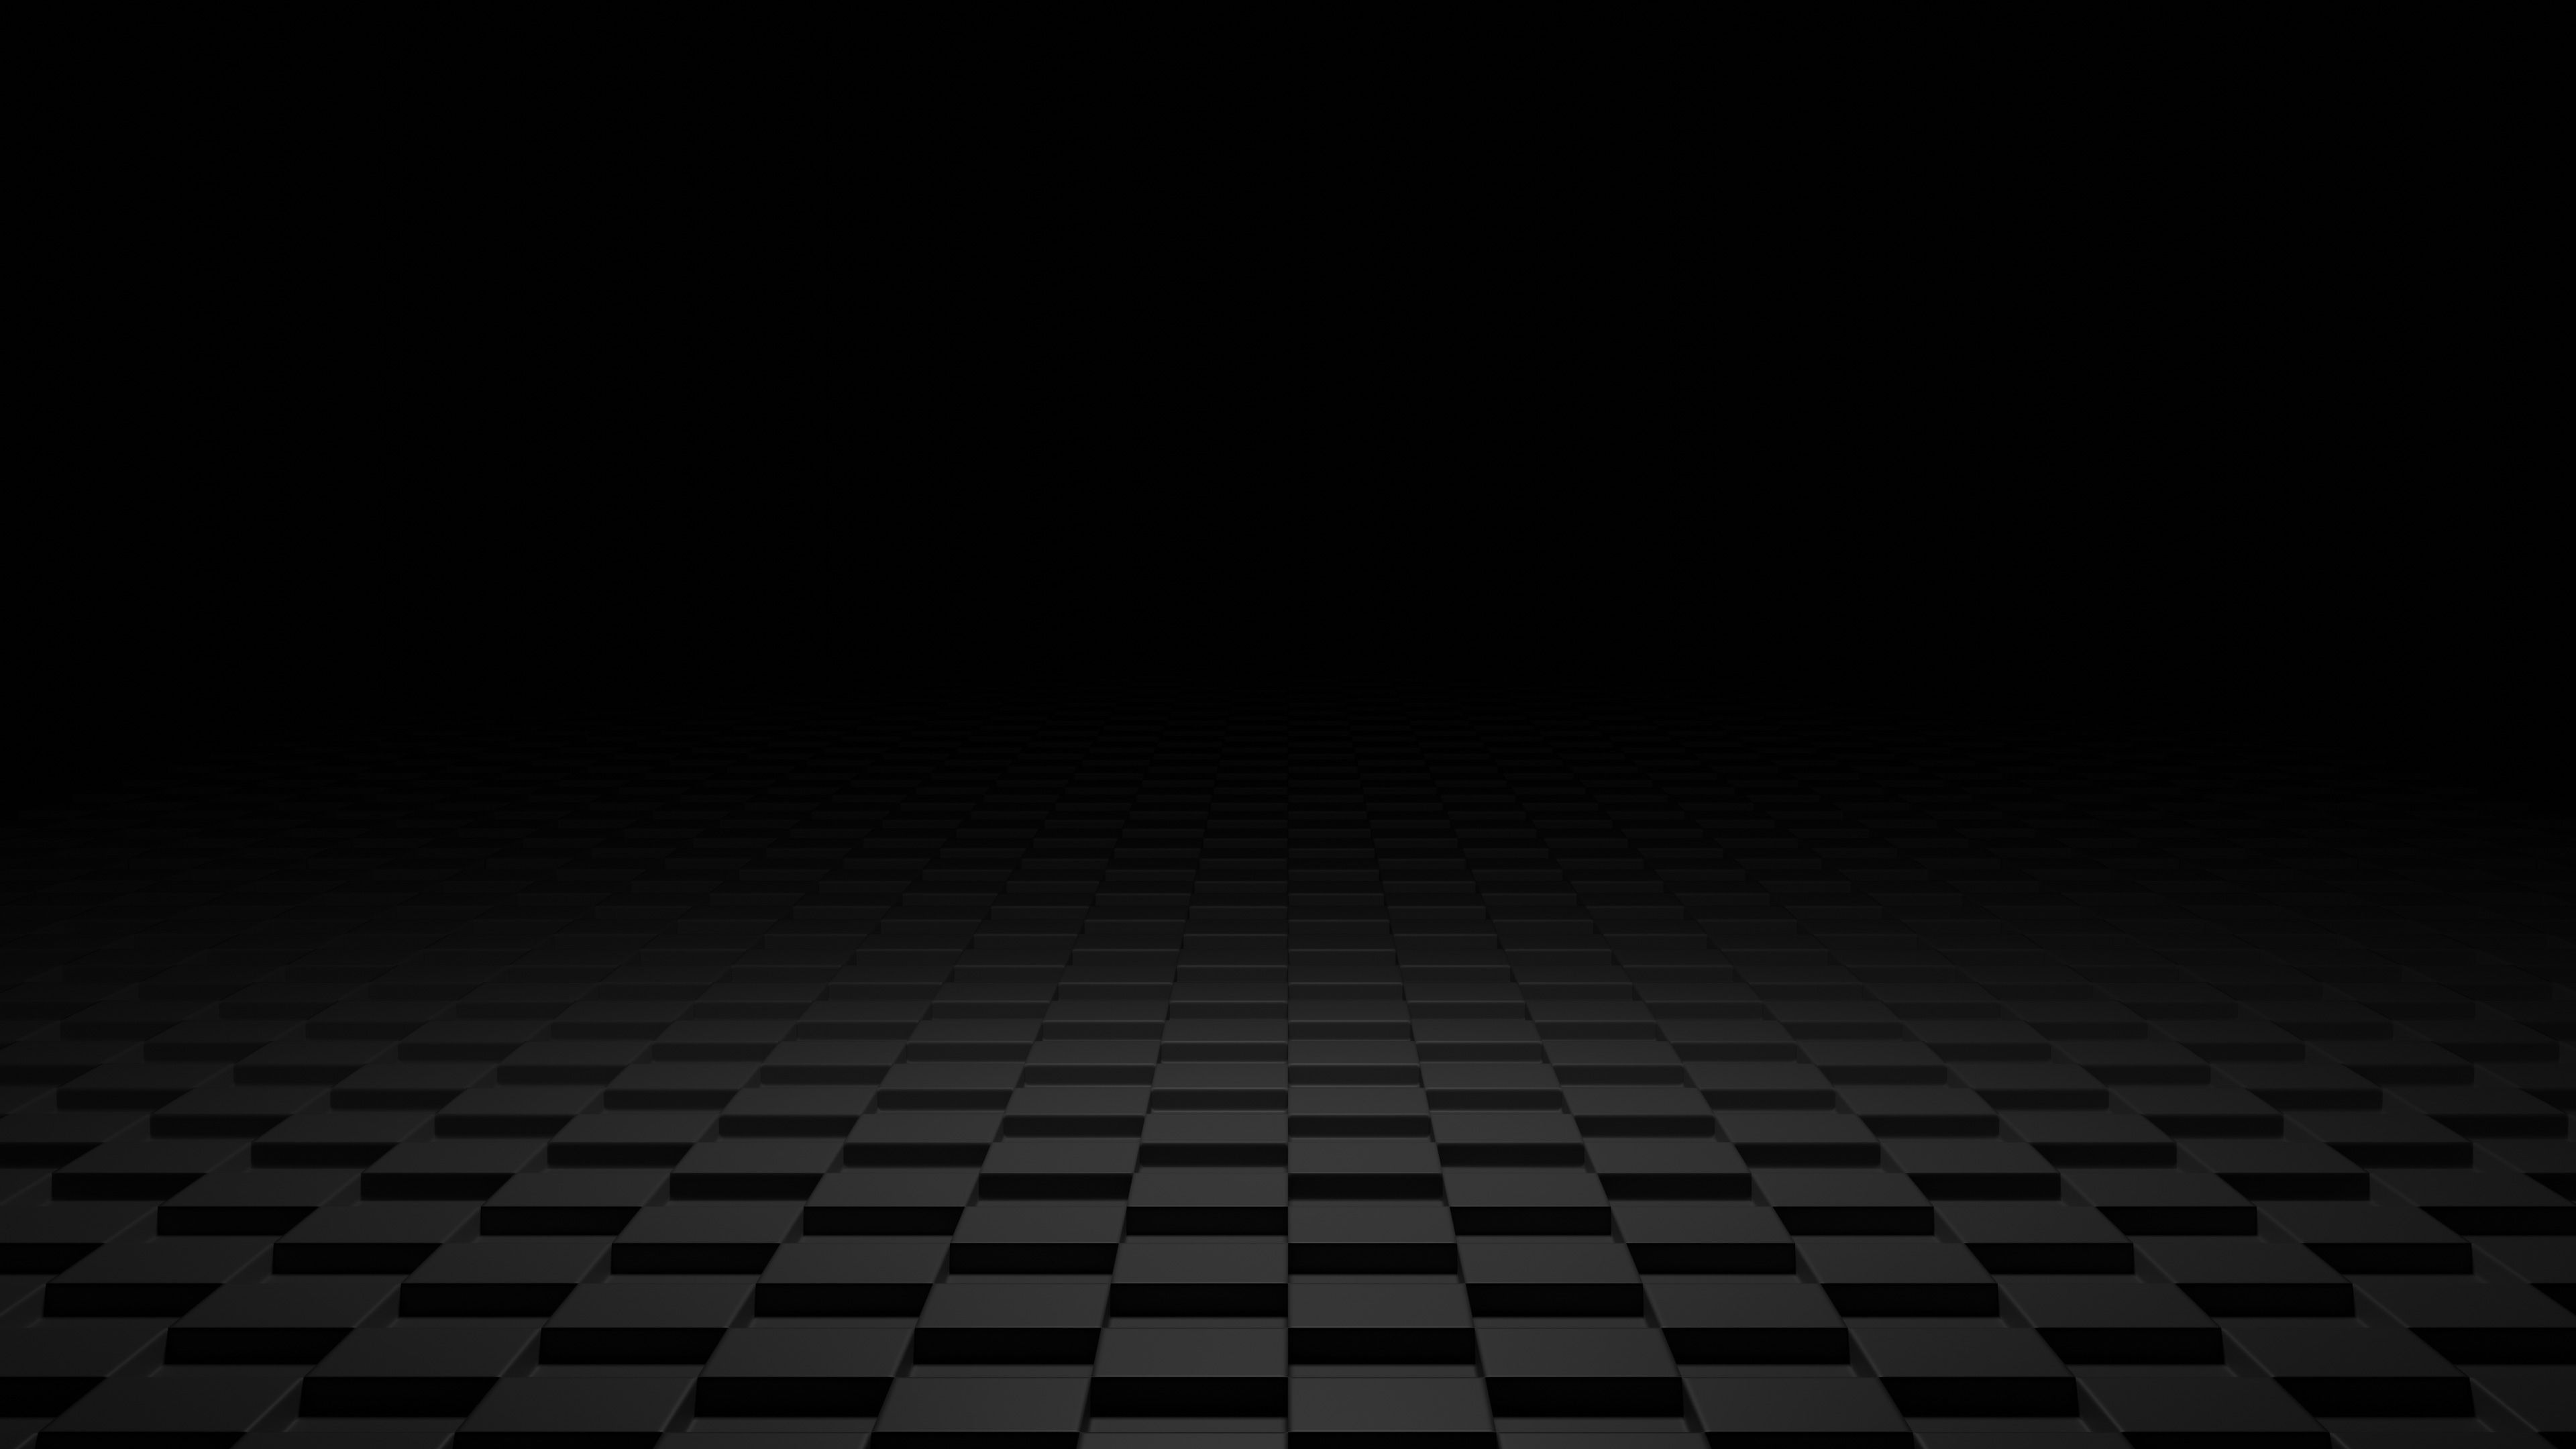 Dark 3d Shapes Floor Shapes Wallpapers Hd Wallpapers Dark Wallpapers Abstract Wallpapers 4k Wallpapers 3d W Dark Wallpaper 3d Wallpaper Abstract Wallpaper